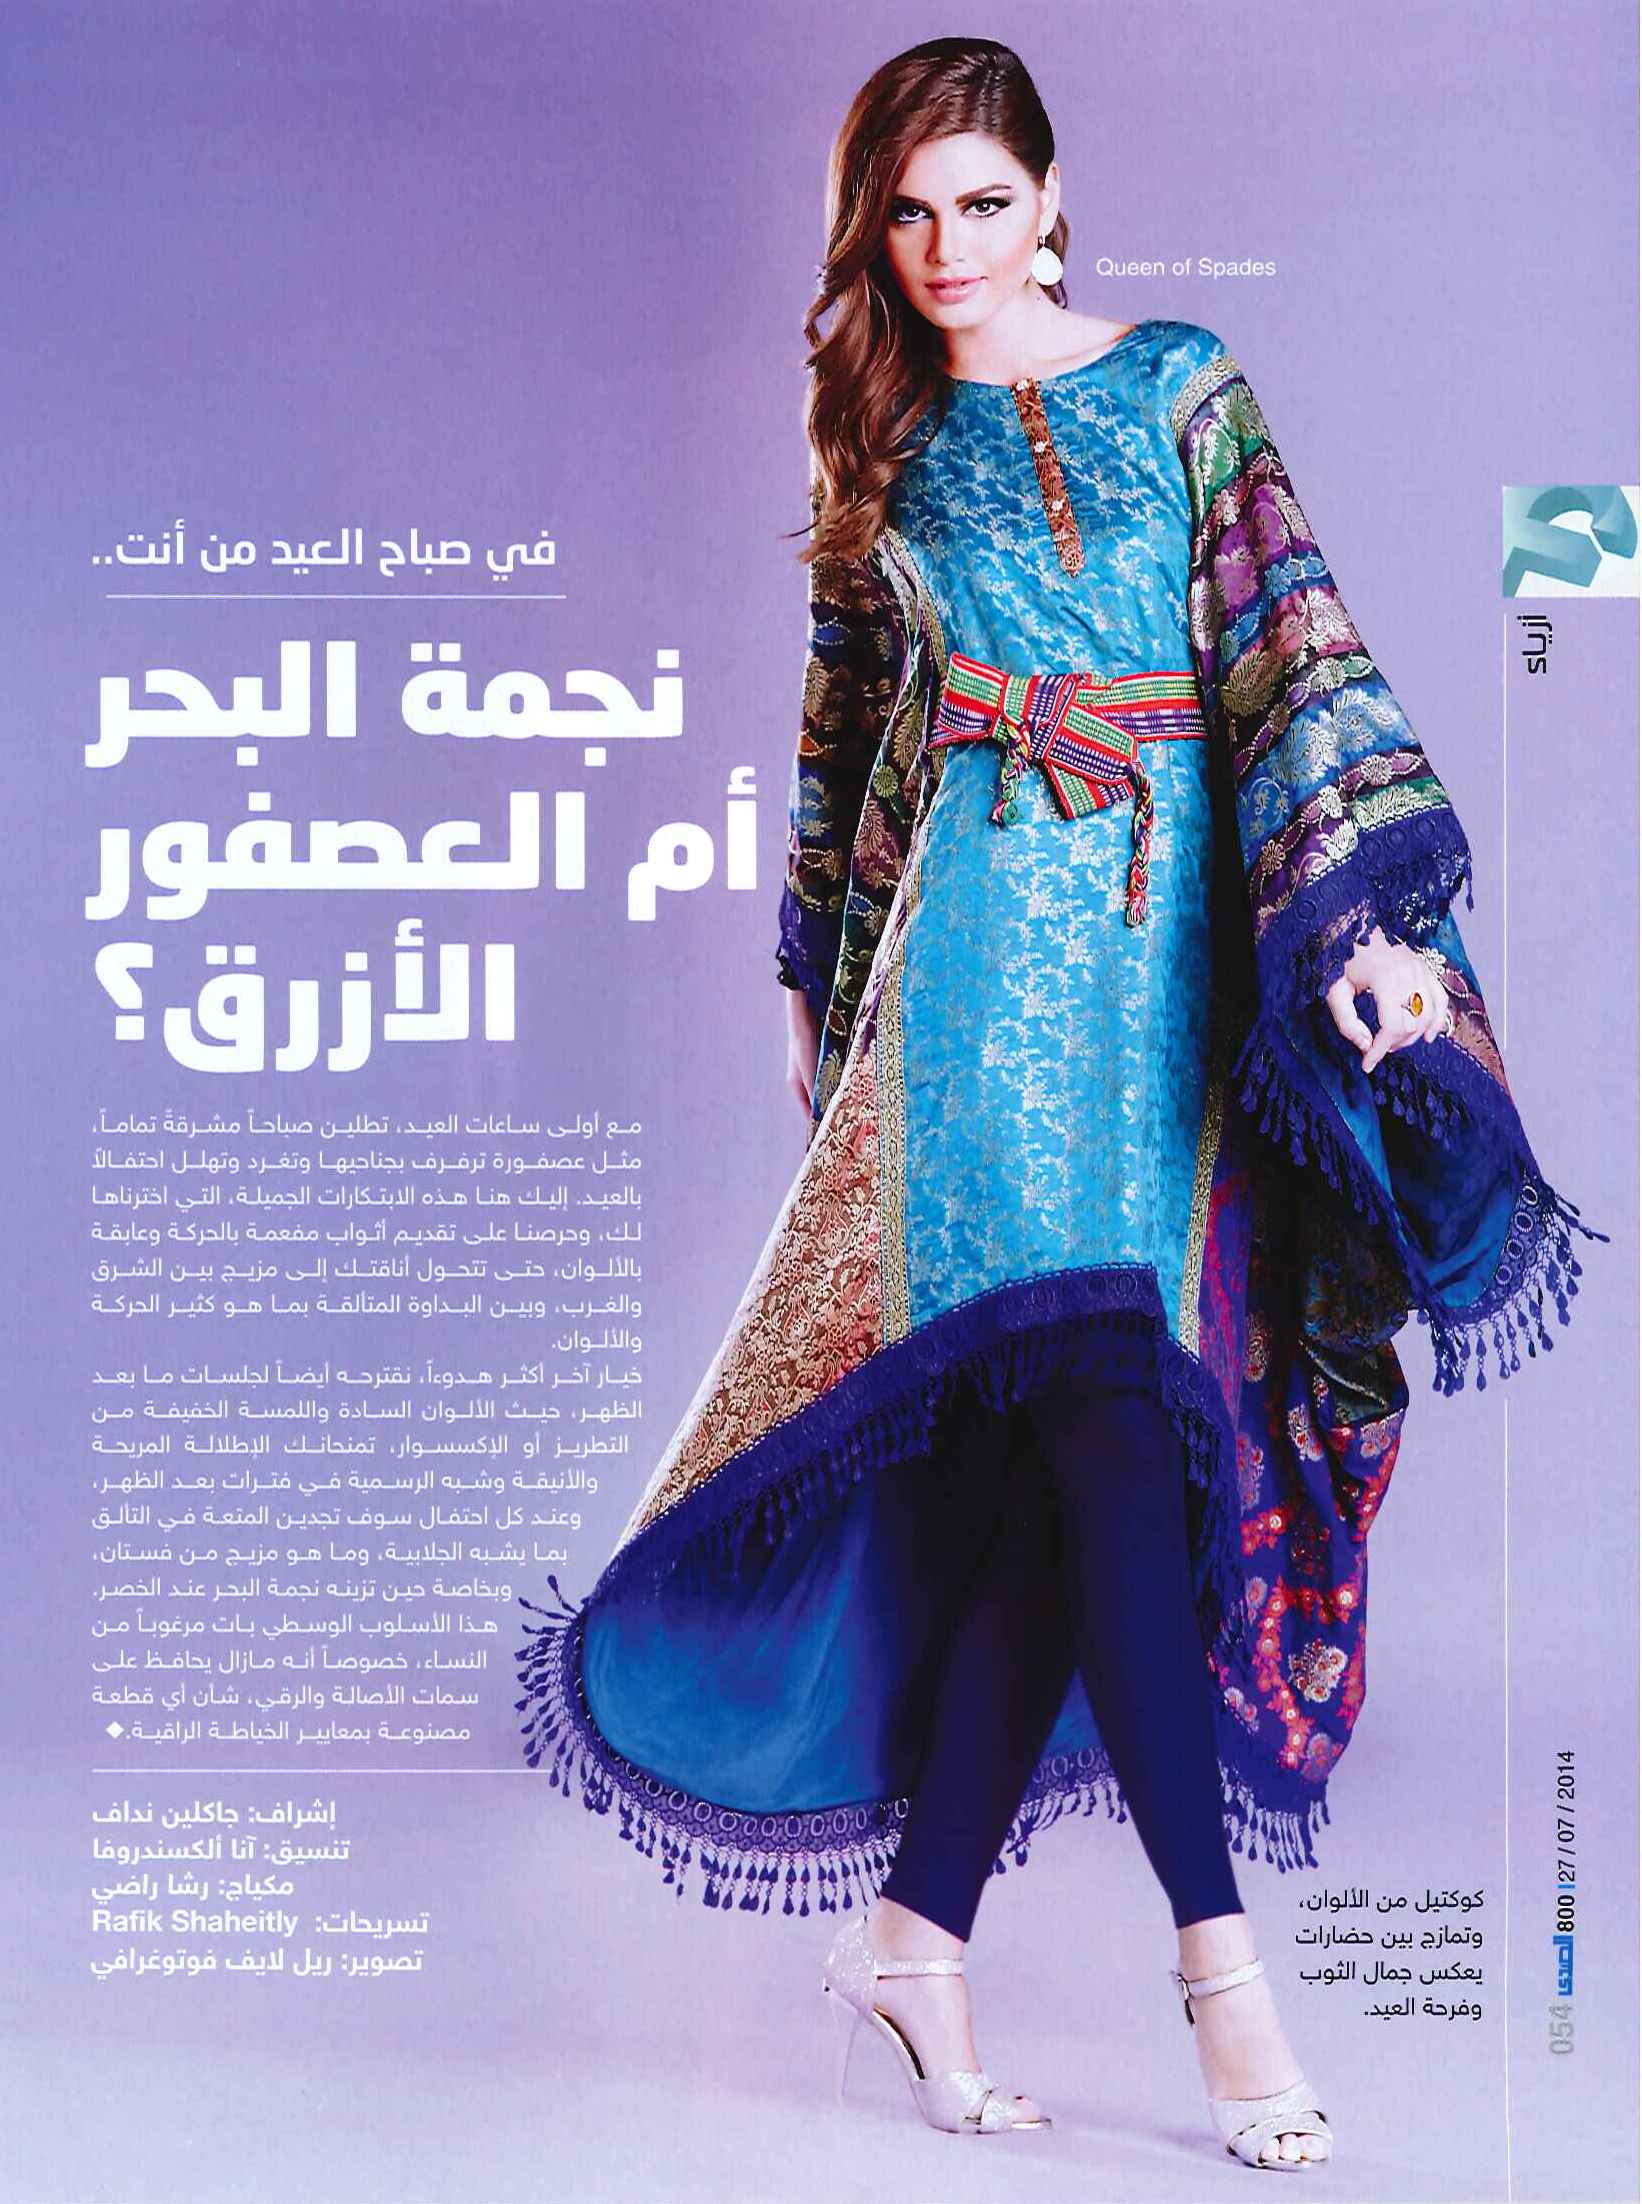 FLC Models & Talents - Catalogue Shoots - Al Sada - Arianna 2